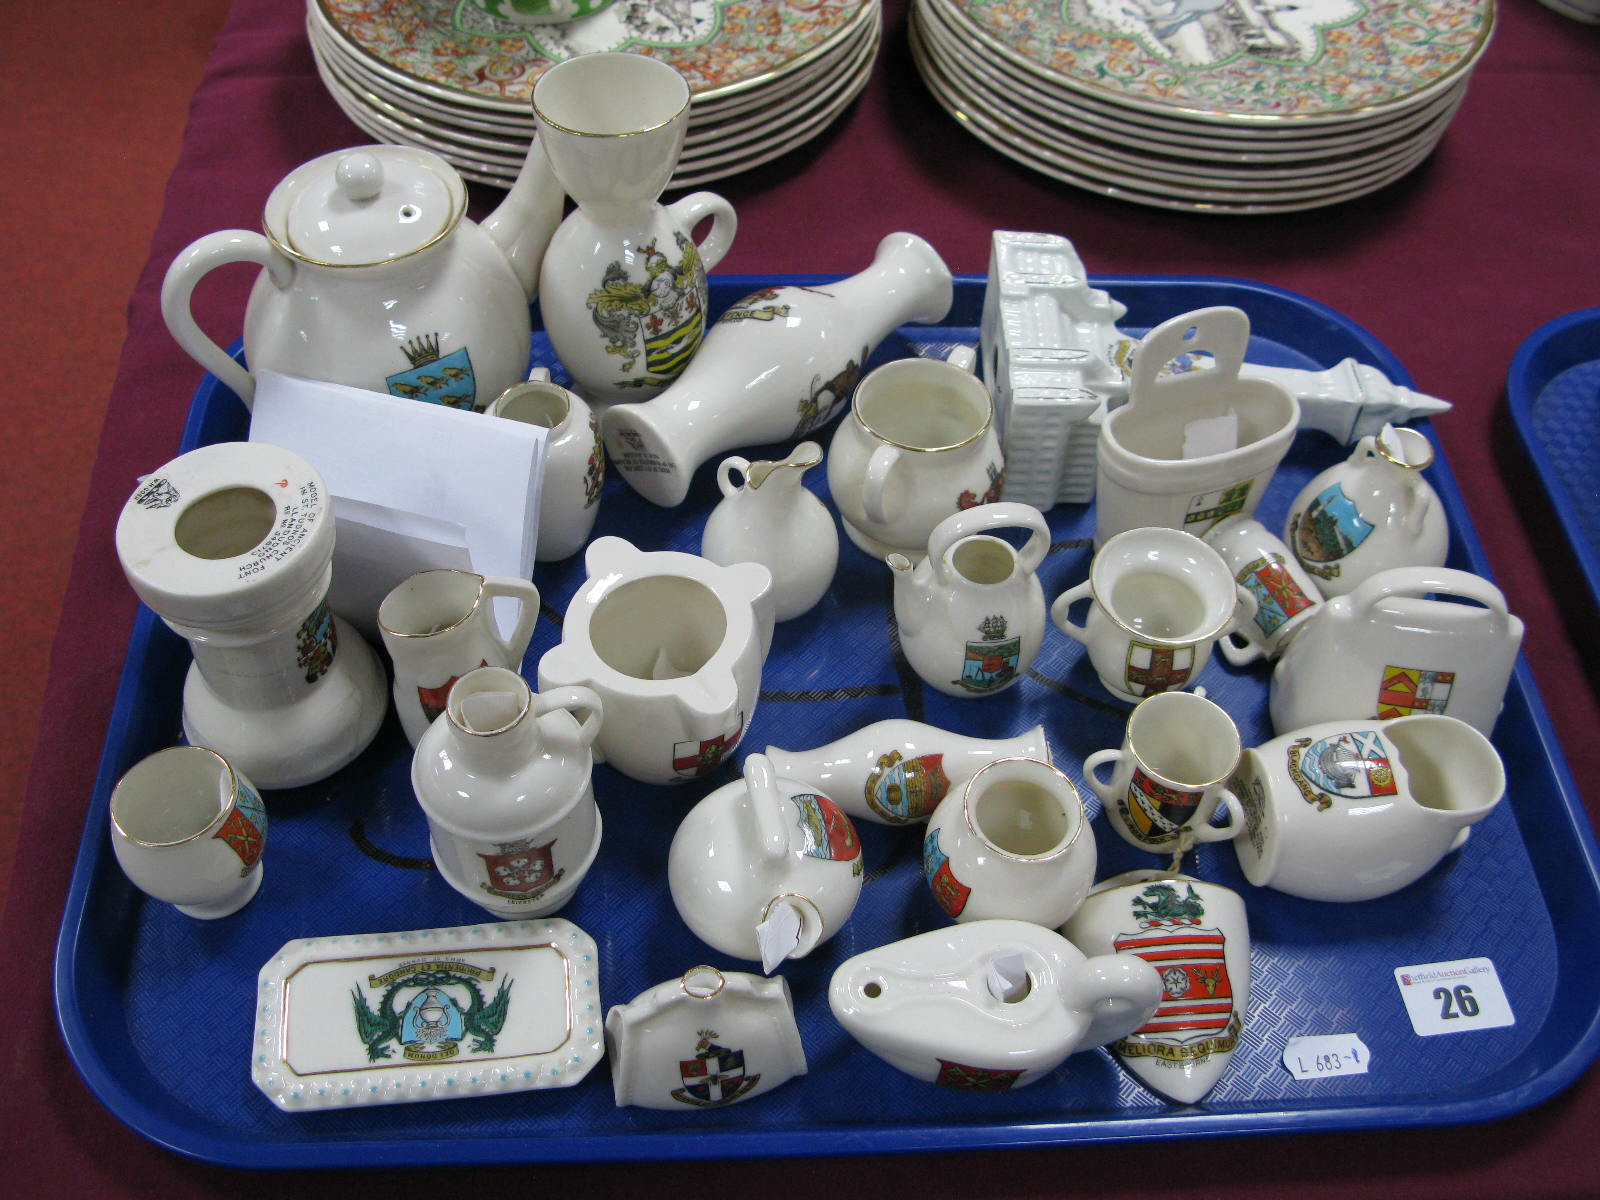 Lot 26 - A Collection of 'Goss' Crested China, including 'Sussex' teapot, 'Blackpool' goblet and a Wilton